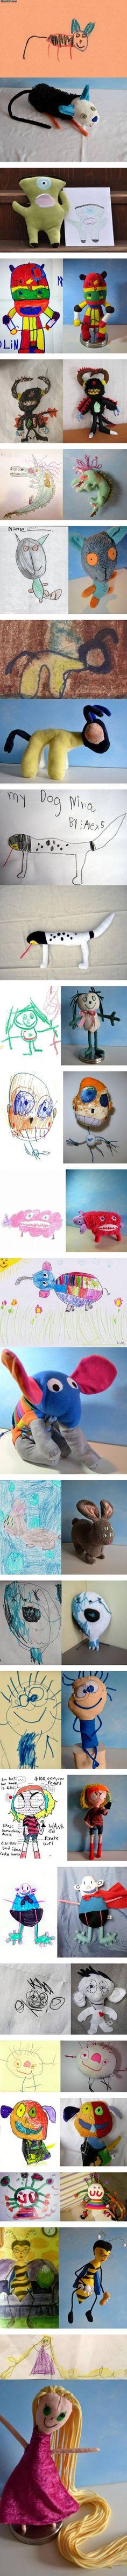 If children's drawings were made into toys. . . here's what they would look like.  Very cool!  I should do this for one of my son's drawings when he gets old enough they look like more than just scribbles :-)